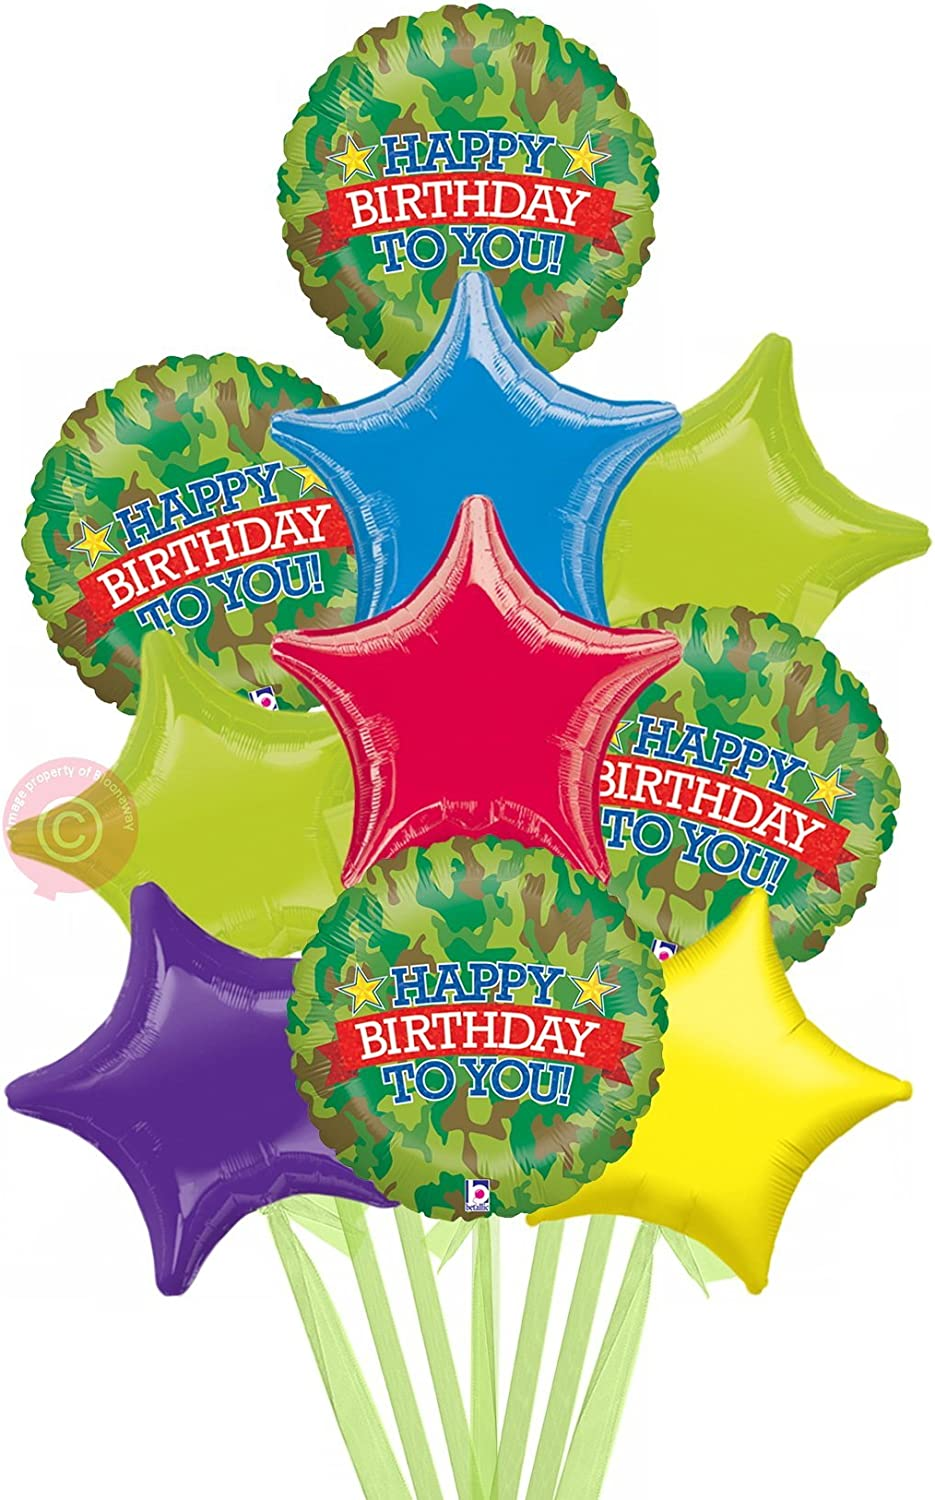 Camouflage Birthday Holographic  Inflated Birthday Helium Balloon Delivered in a Box  Biggest Bouquet  10 Balloons  Bloonaway